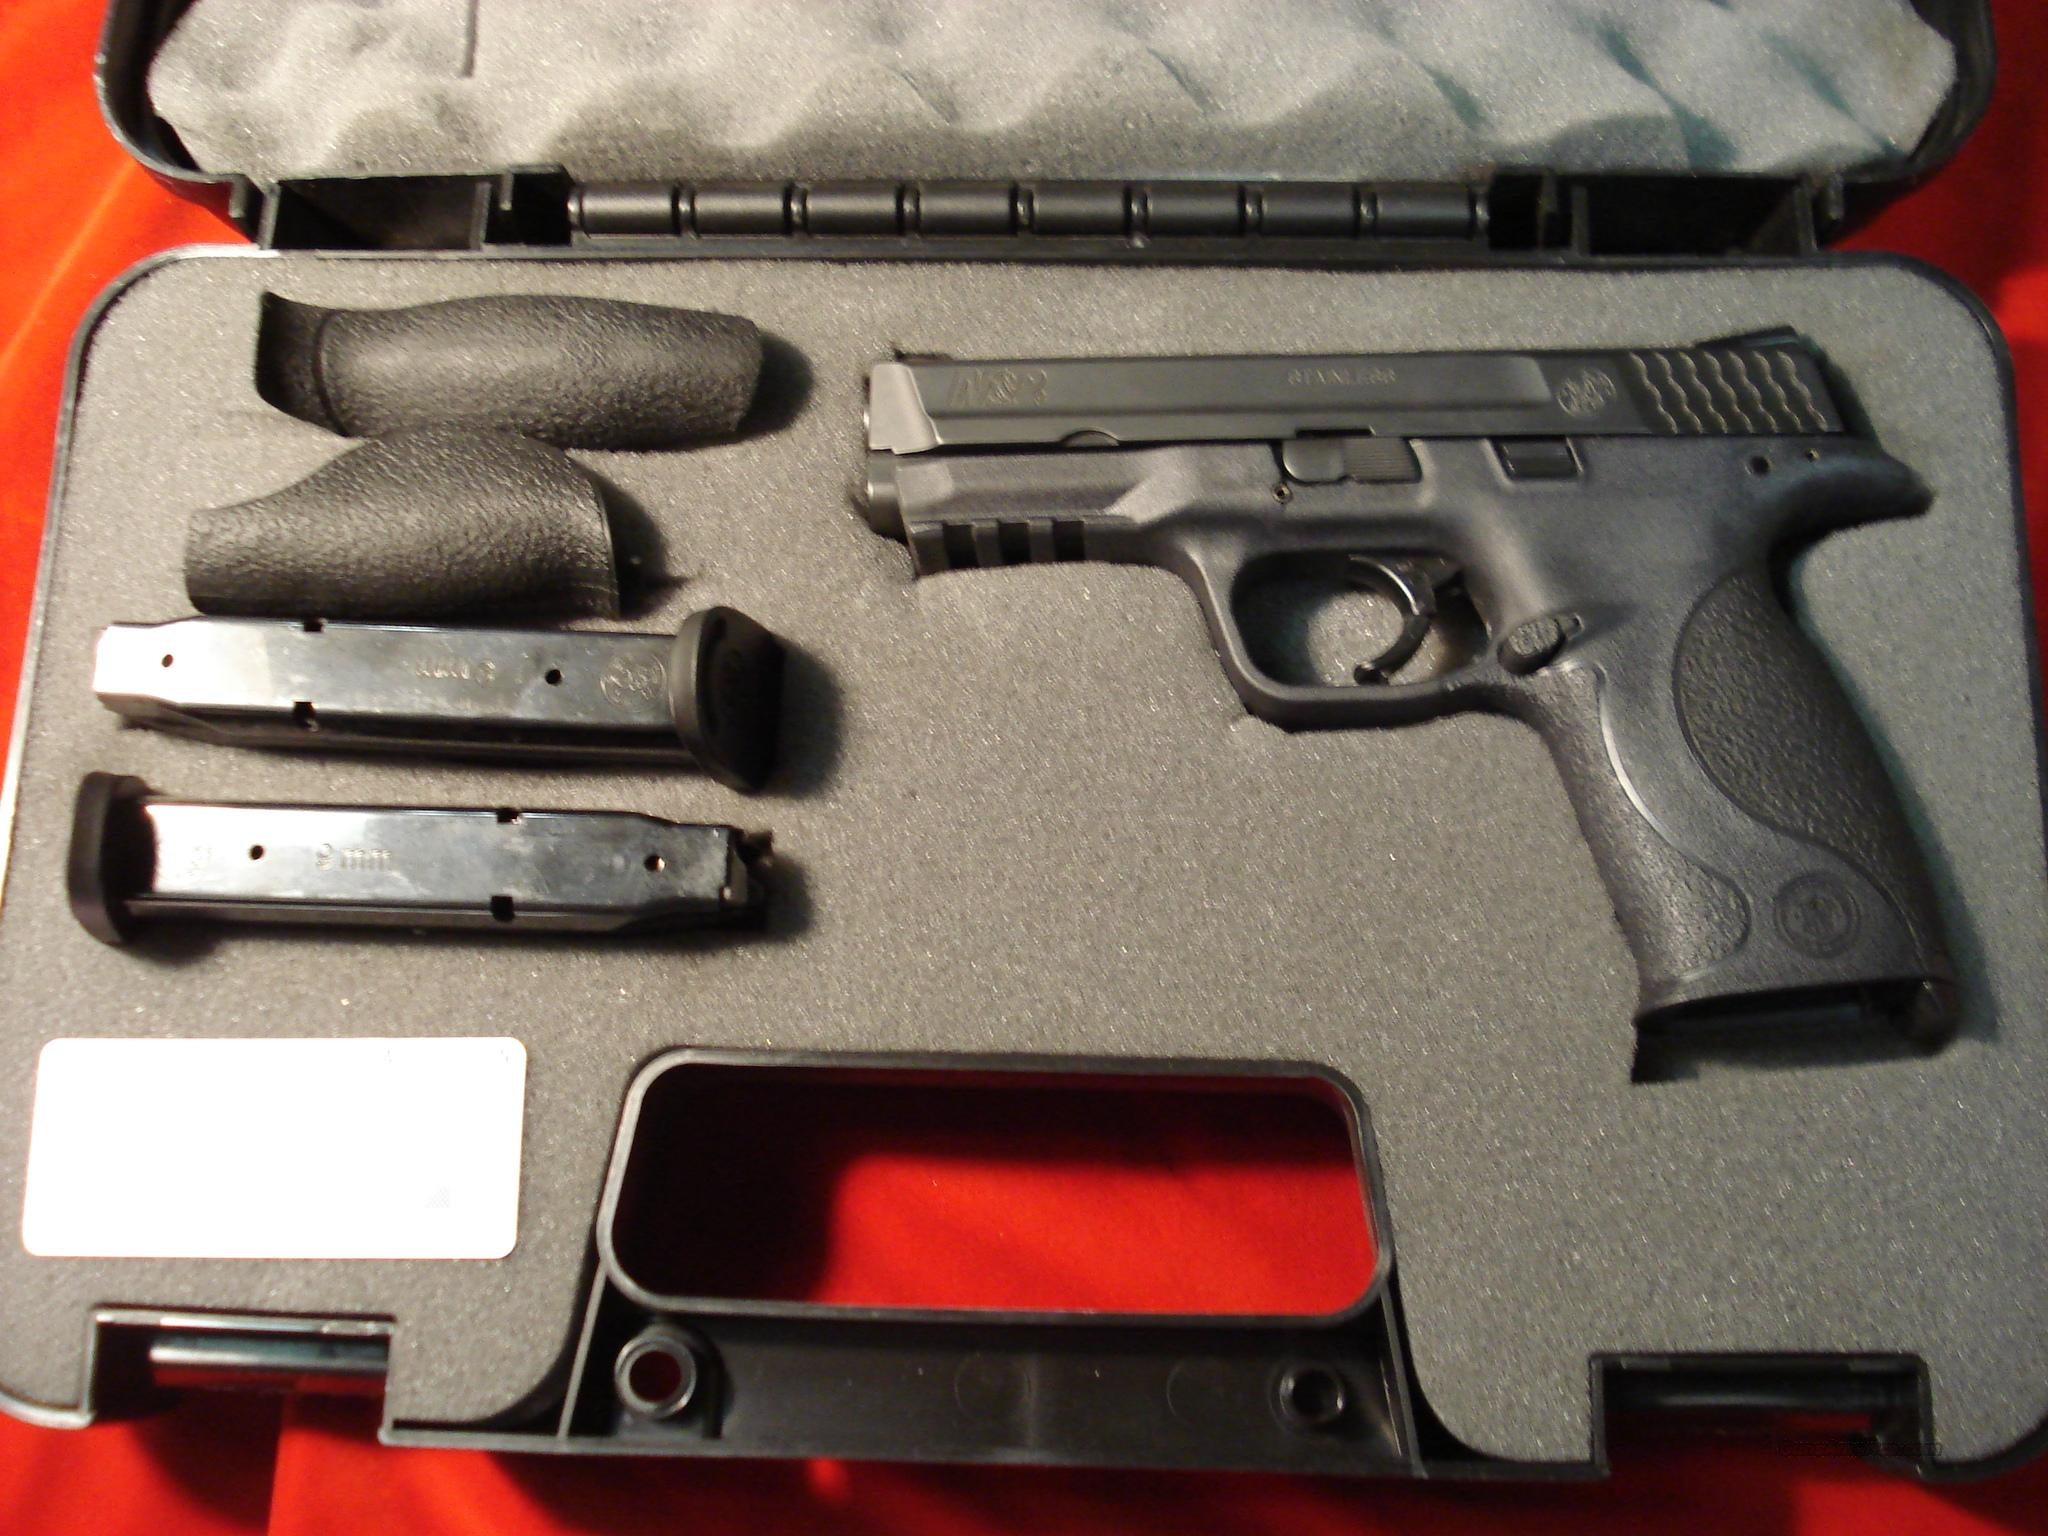 SMITH AND WESSON M&P 9MM HIGH/CAP  Guns > Pistols > Smith & Wesson Pistols - Autos > Polymer Frame